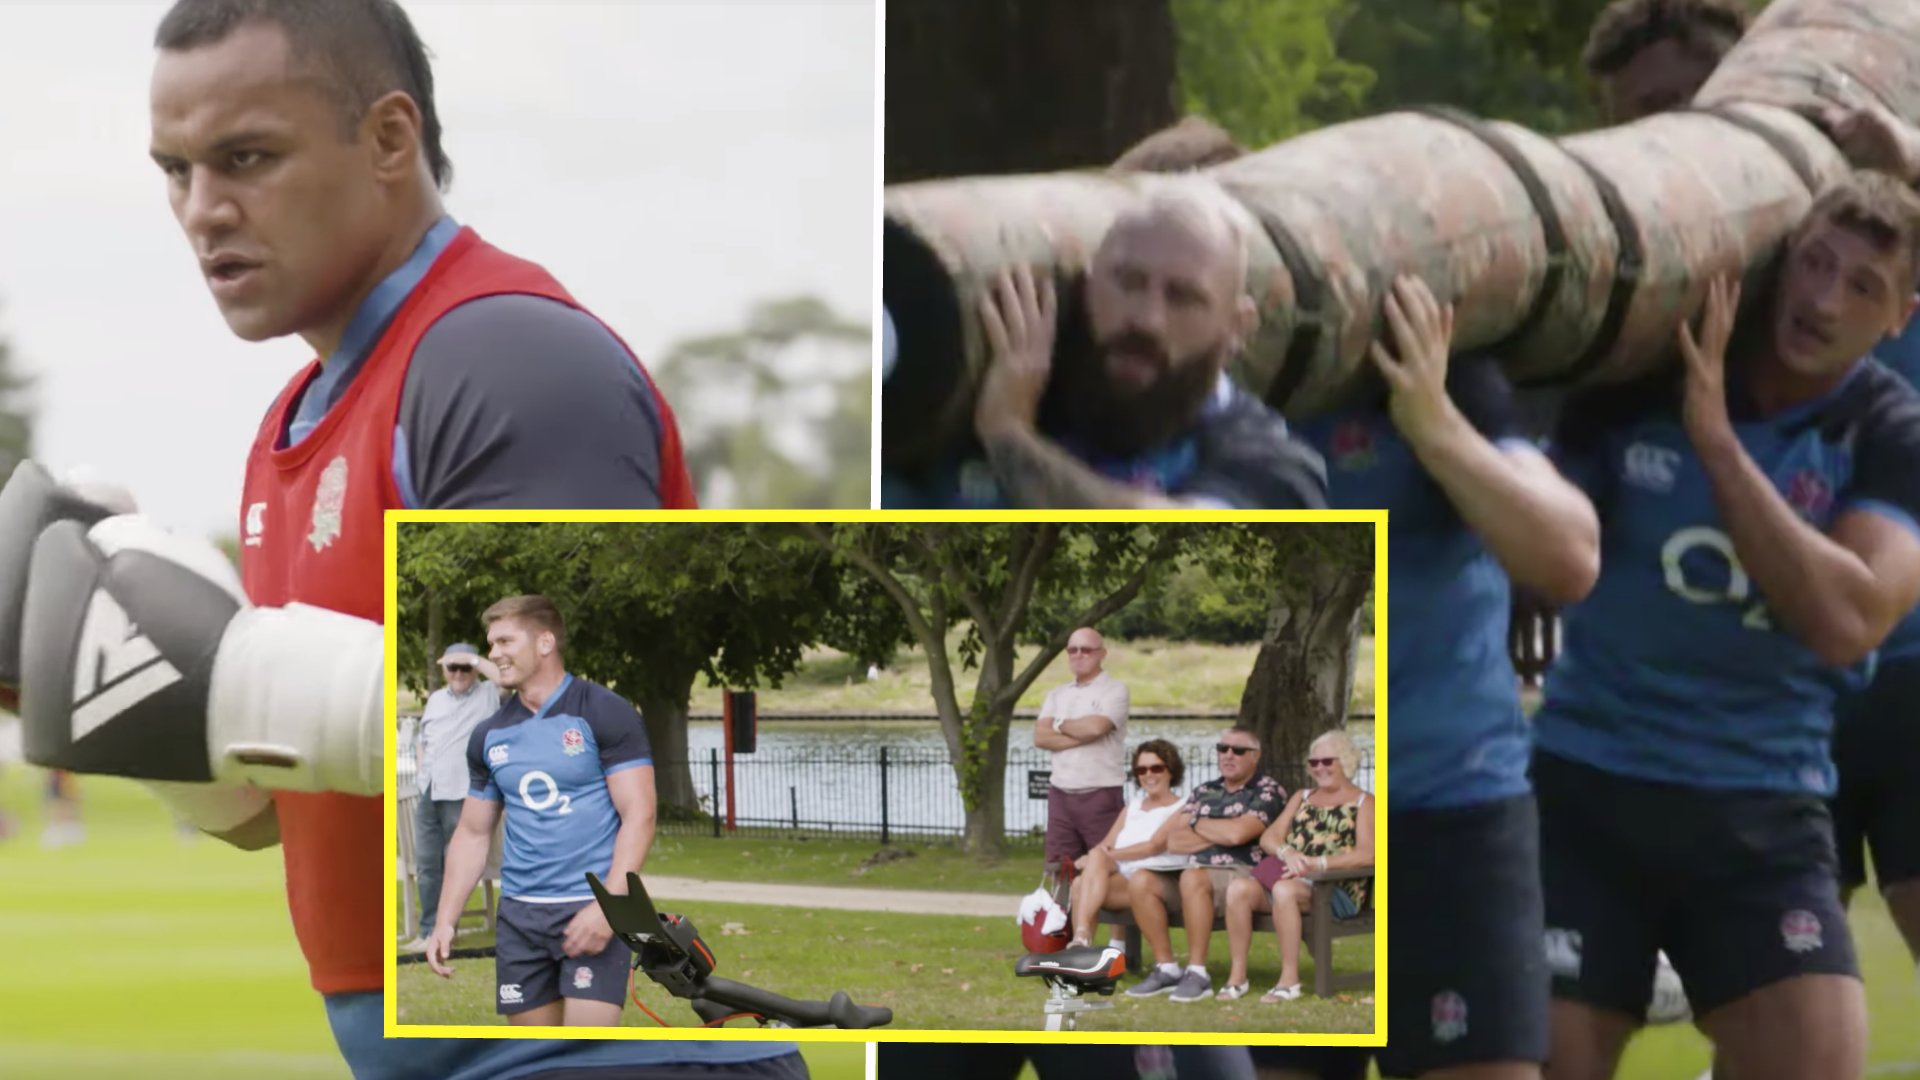 WATCH: The UNPRECEDENTED access that England Rugby is giving the public of their World Cup training camps